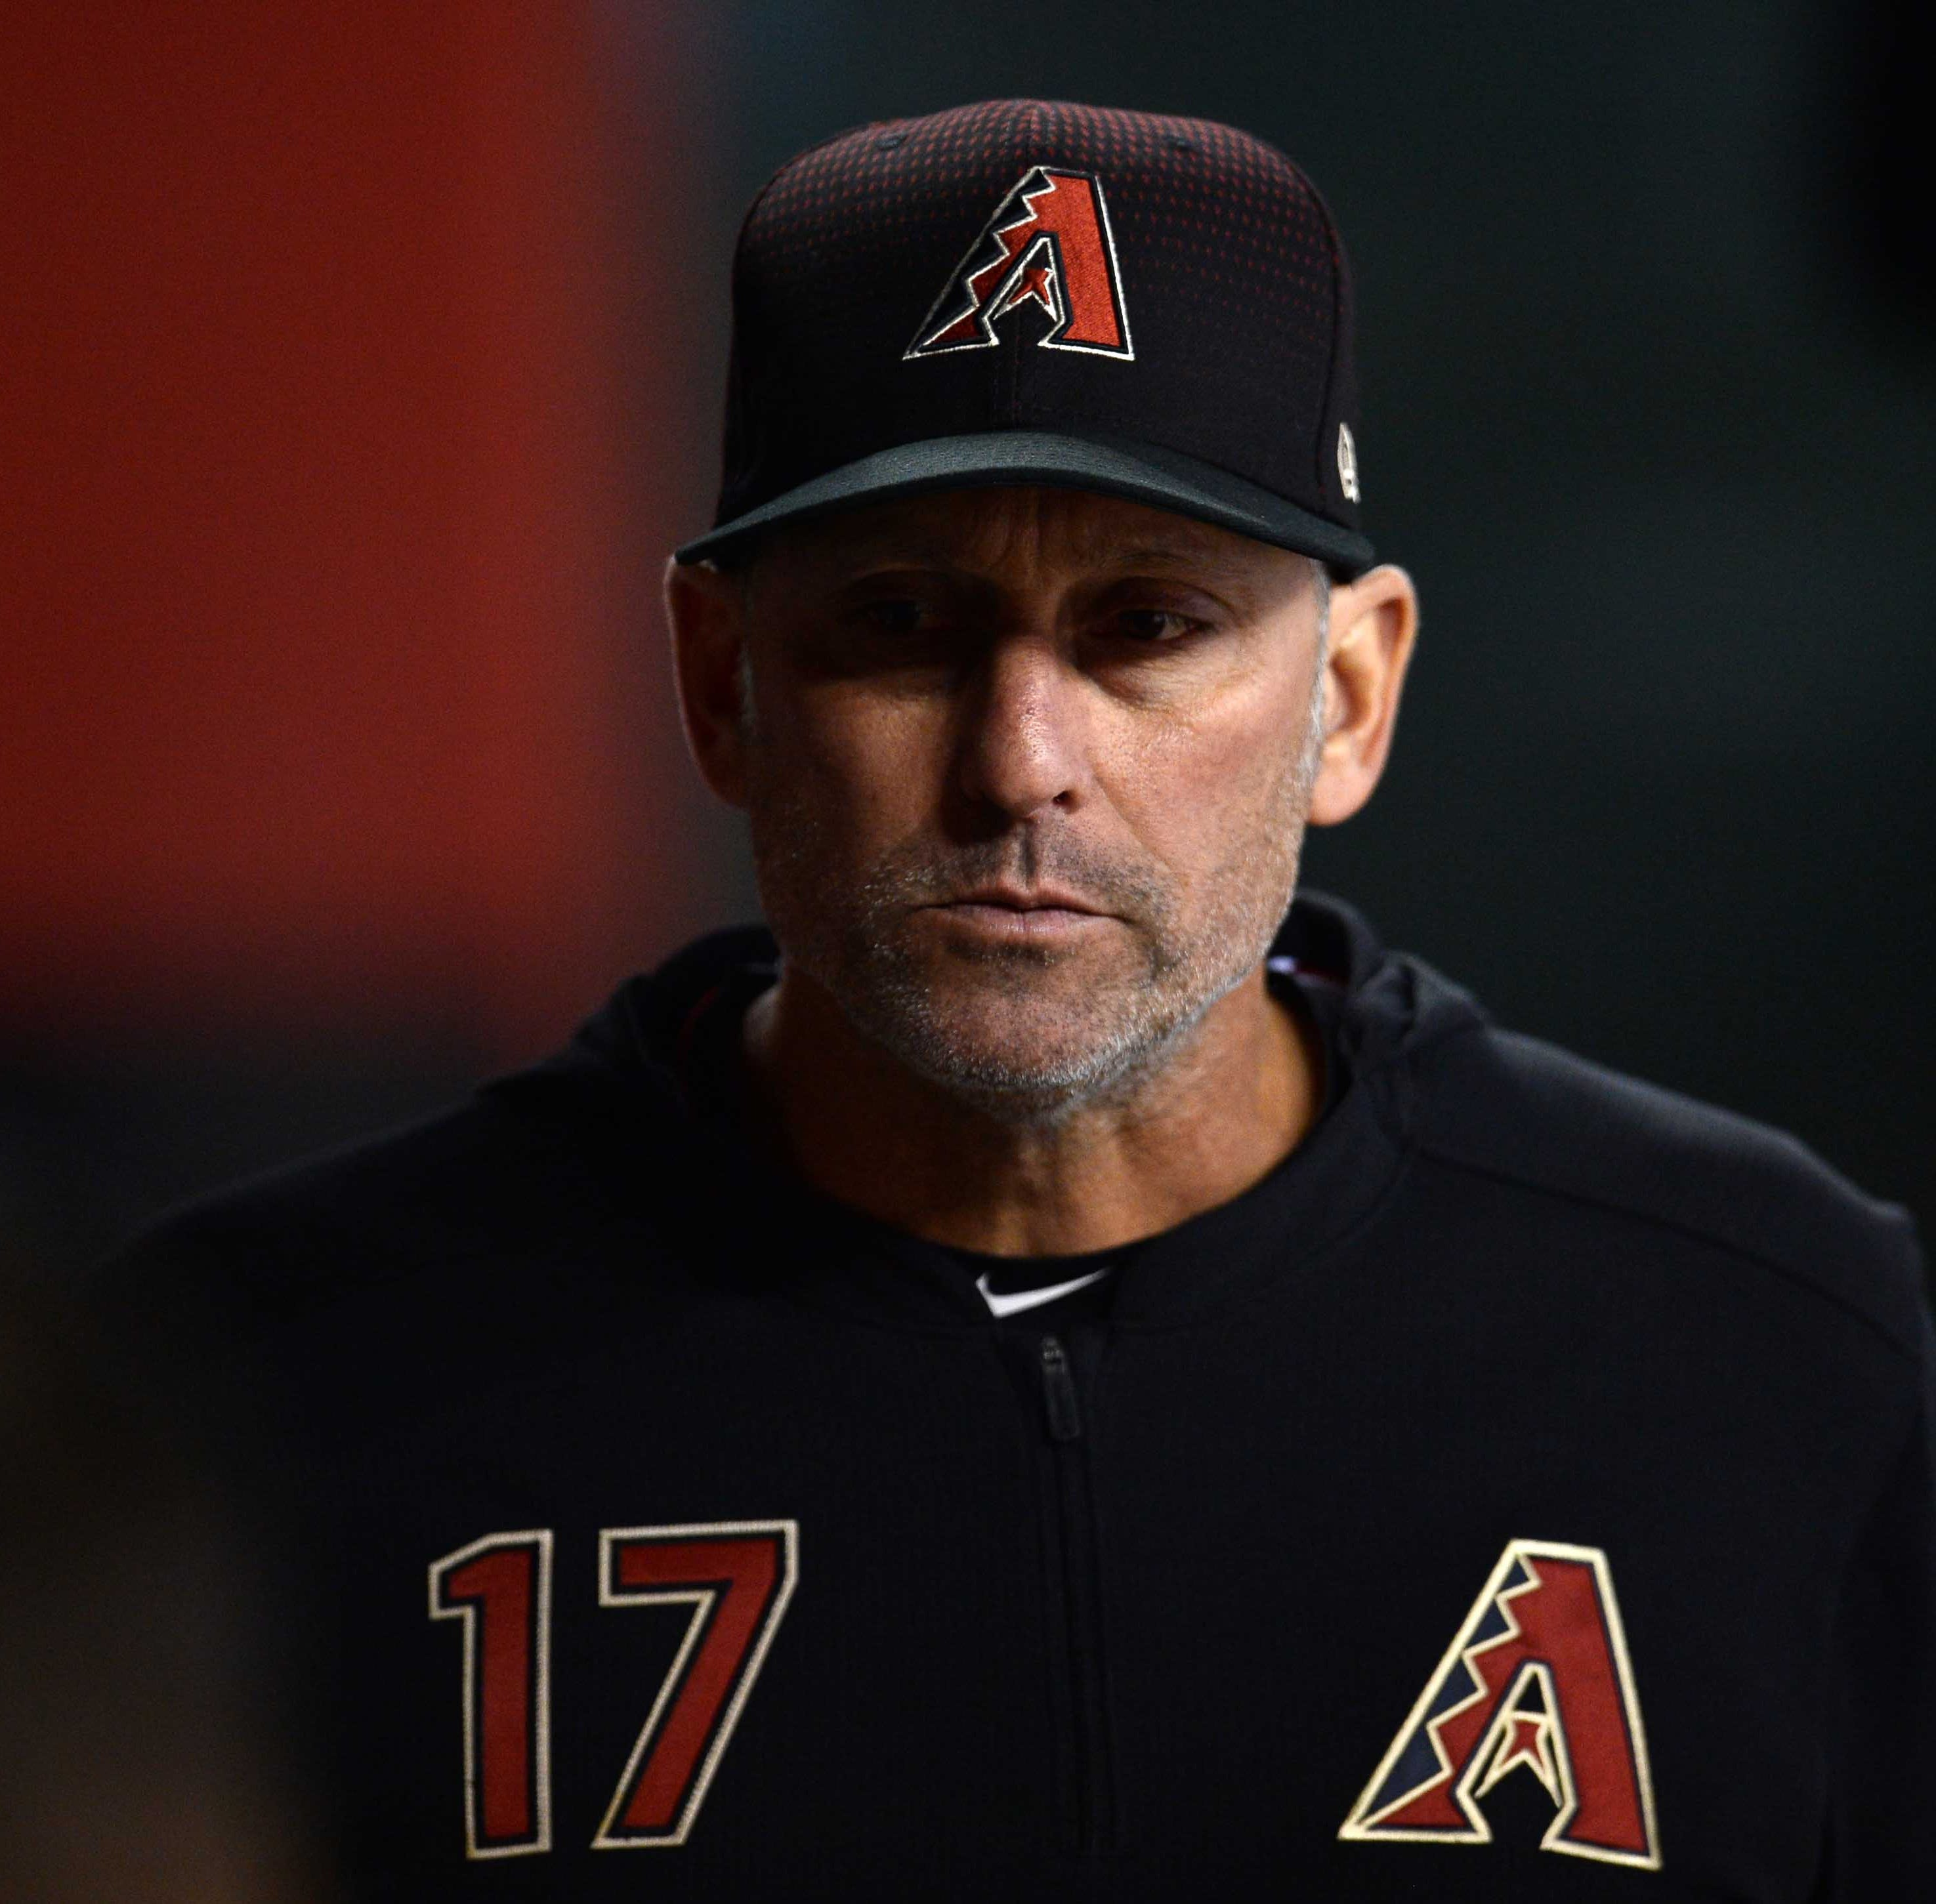 Has Diamondbacks manager Torey Lovullo learned from last season's mistakes?